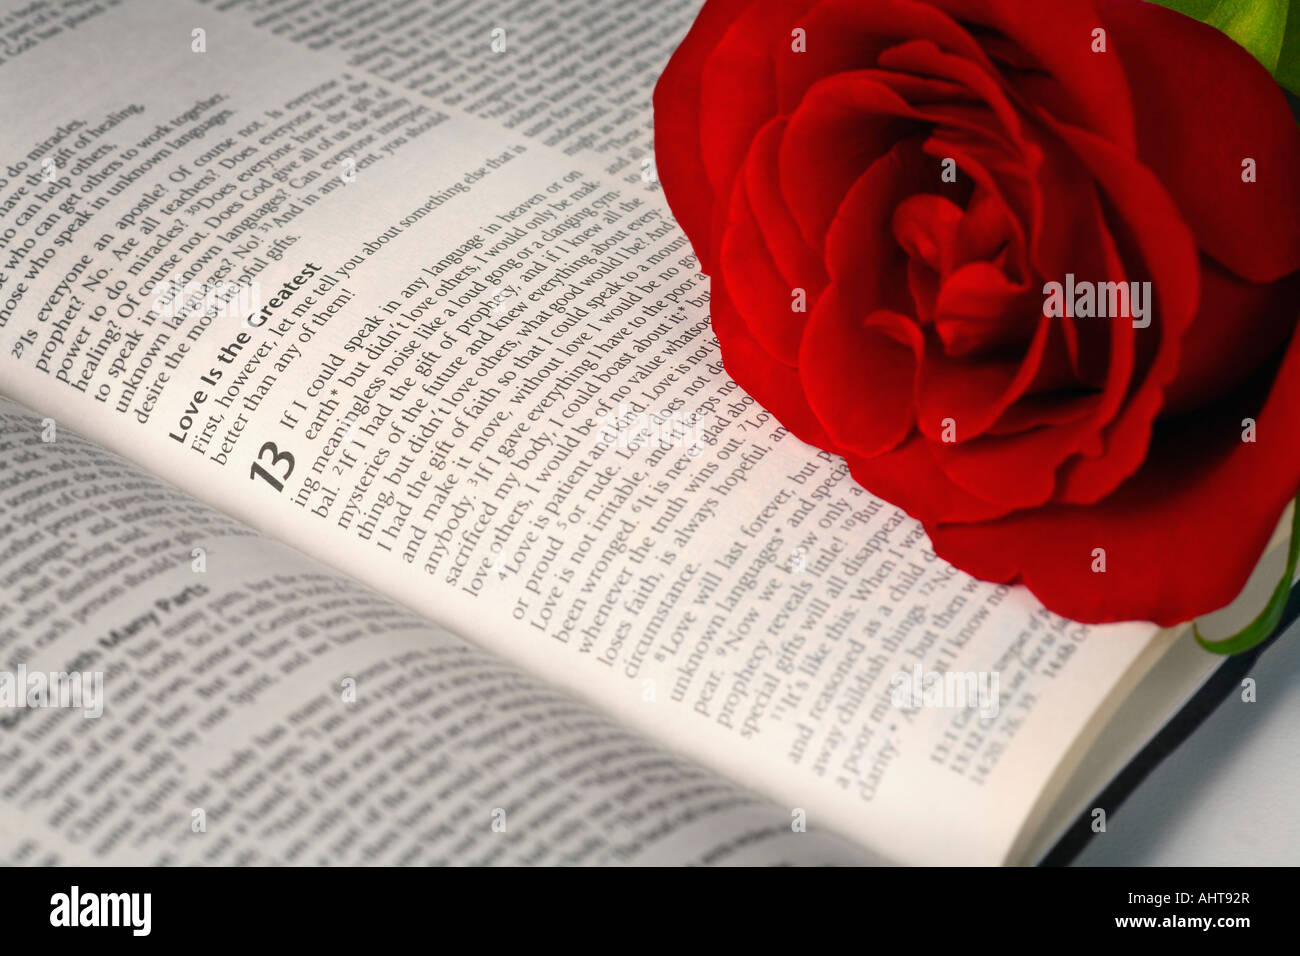 Wedding Rings Clip Art Free Download Red rose on open Bible...